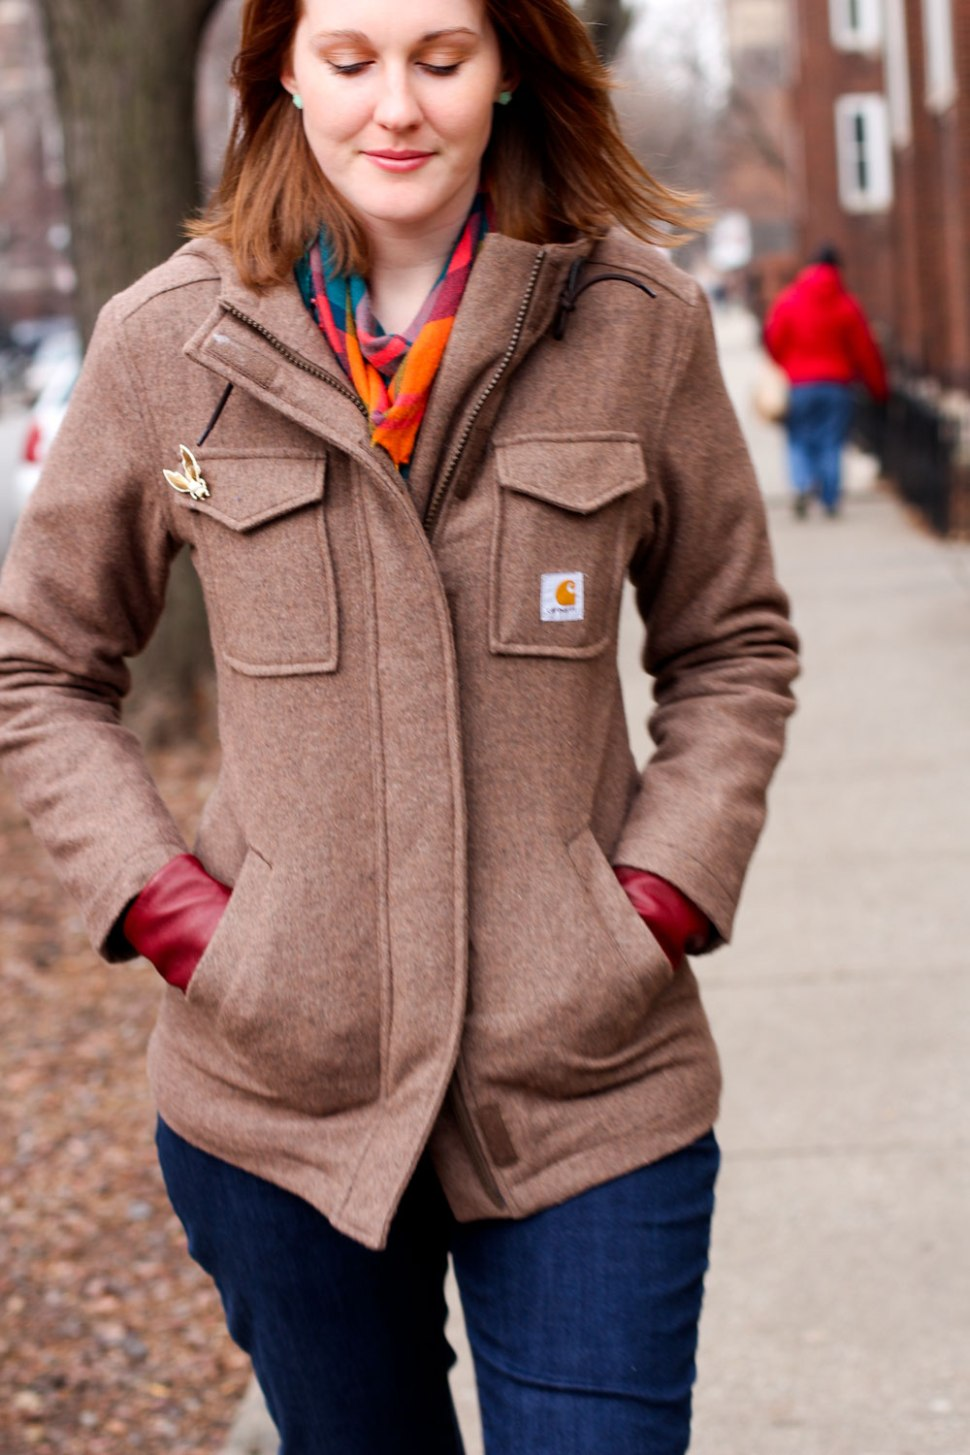 DIY elbow patches and Carhartt